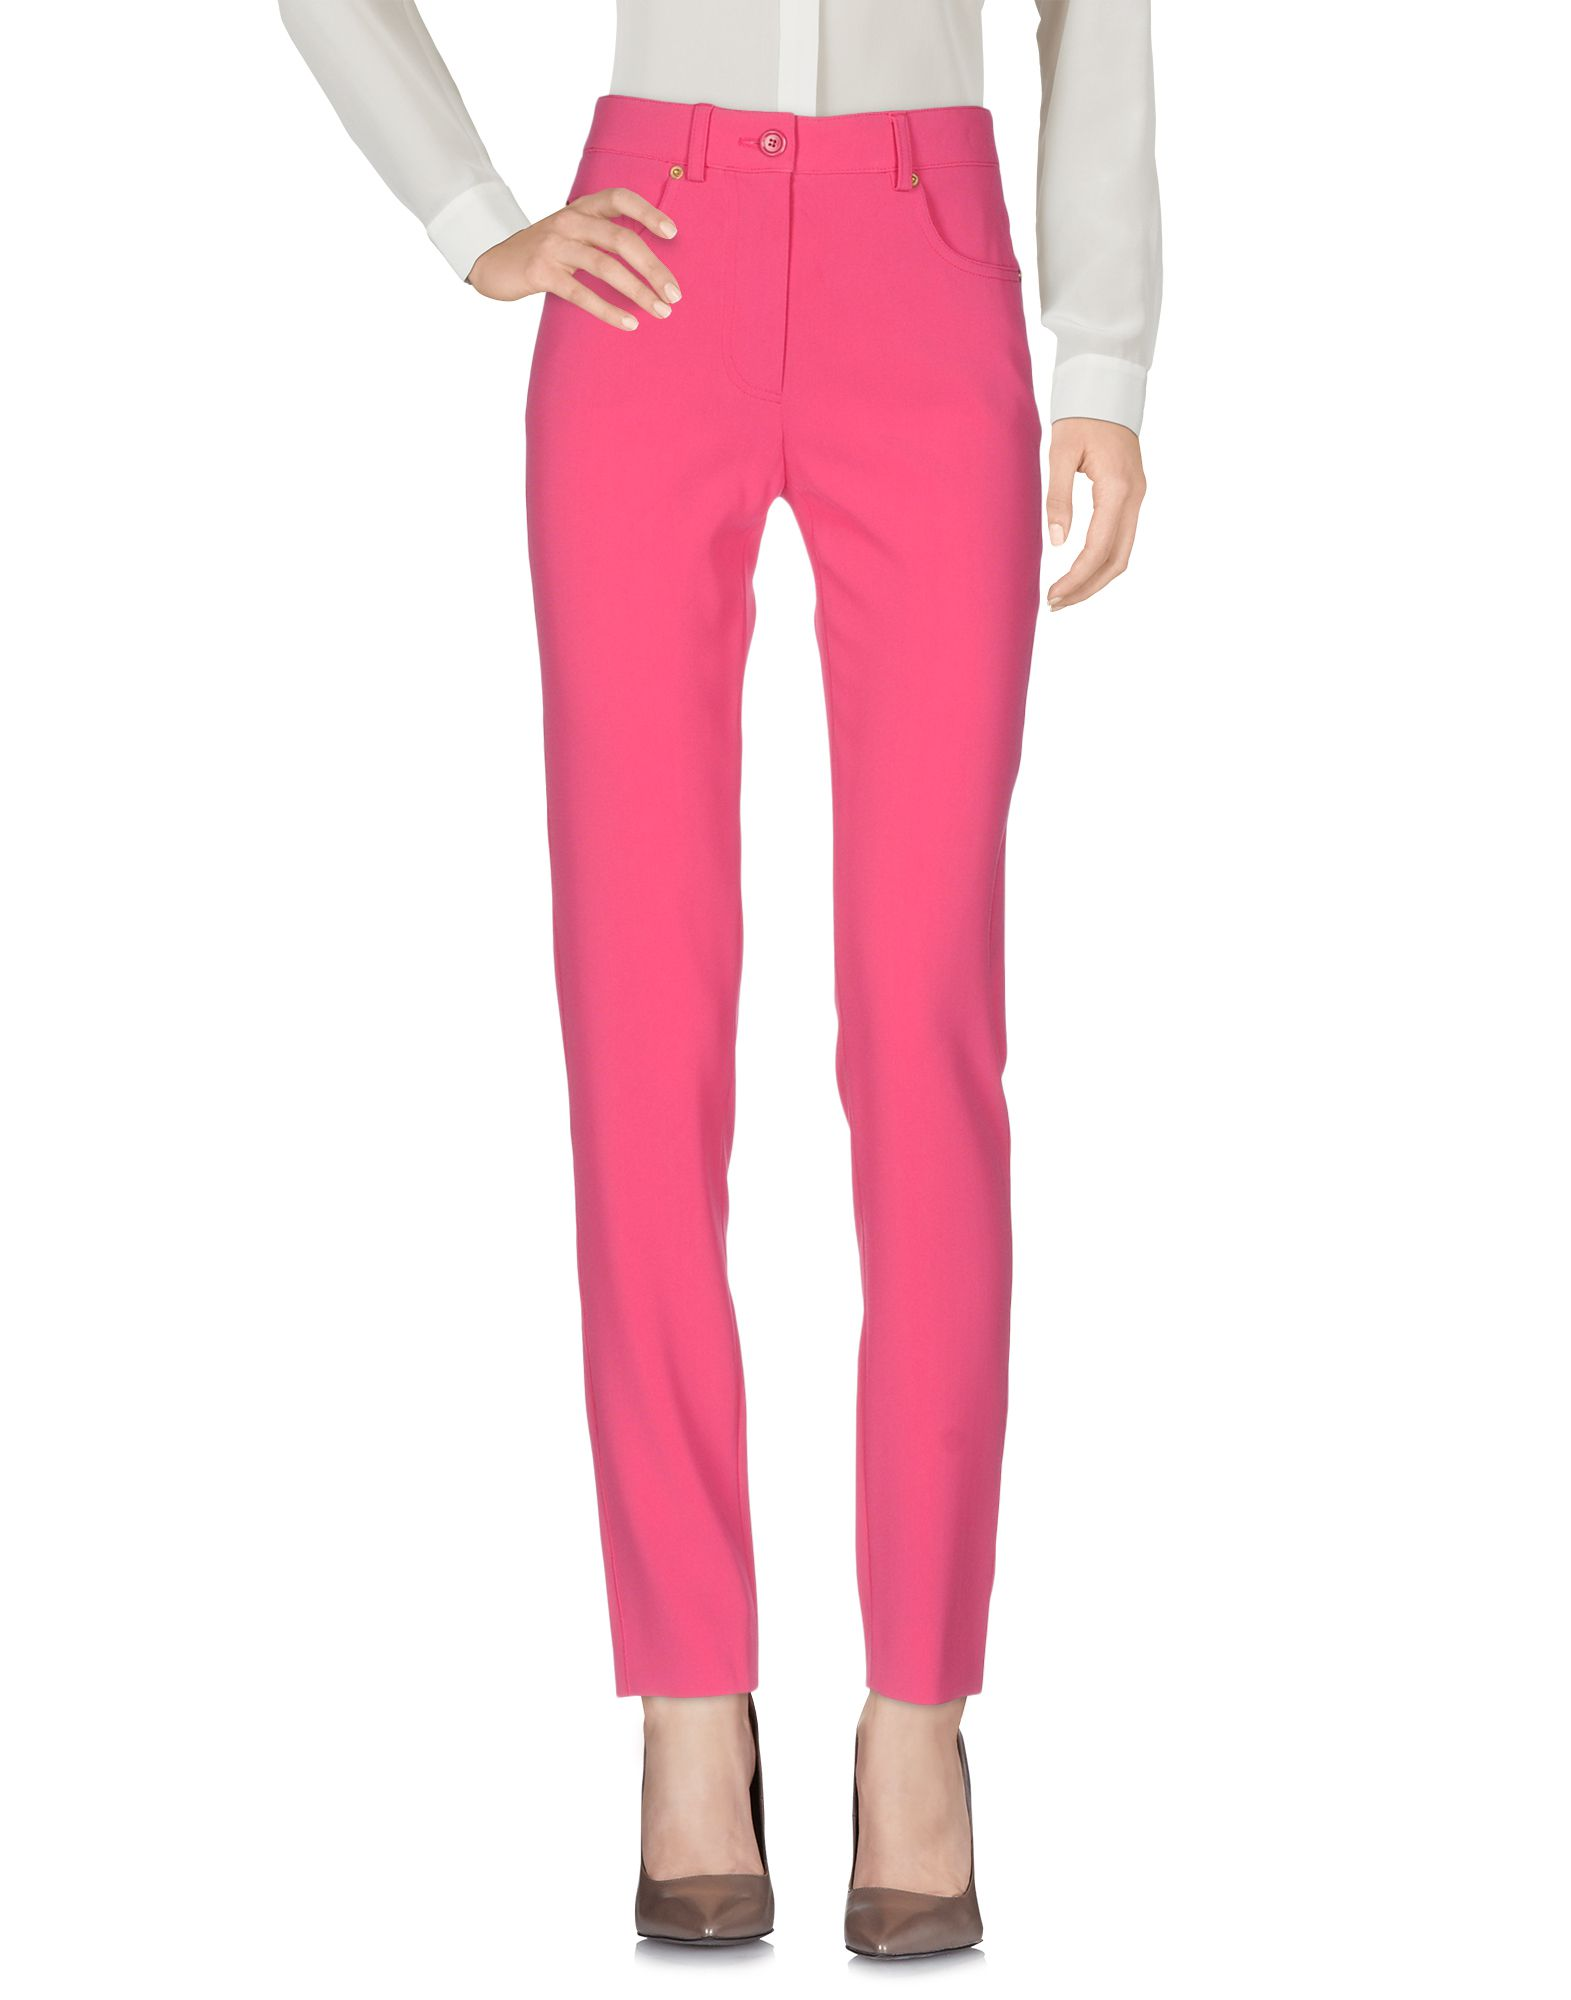 MOSCHINO CHEAP AND CHIC Casual Pants in Fuchsia